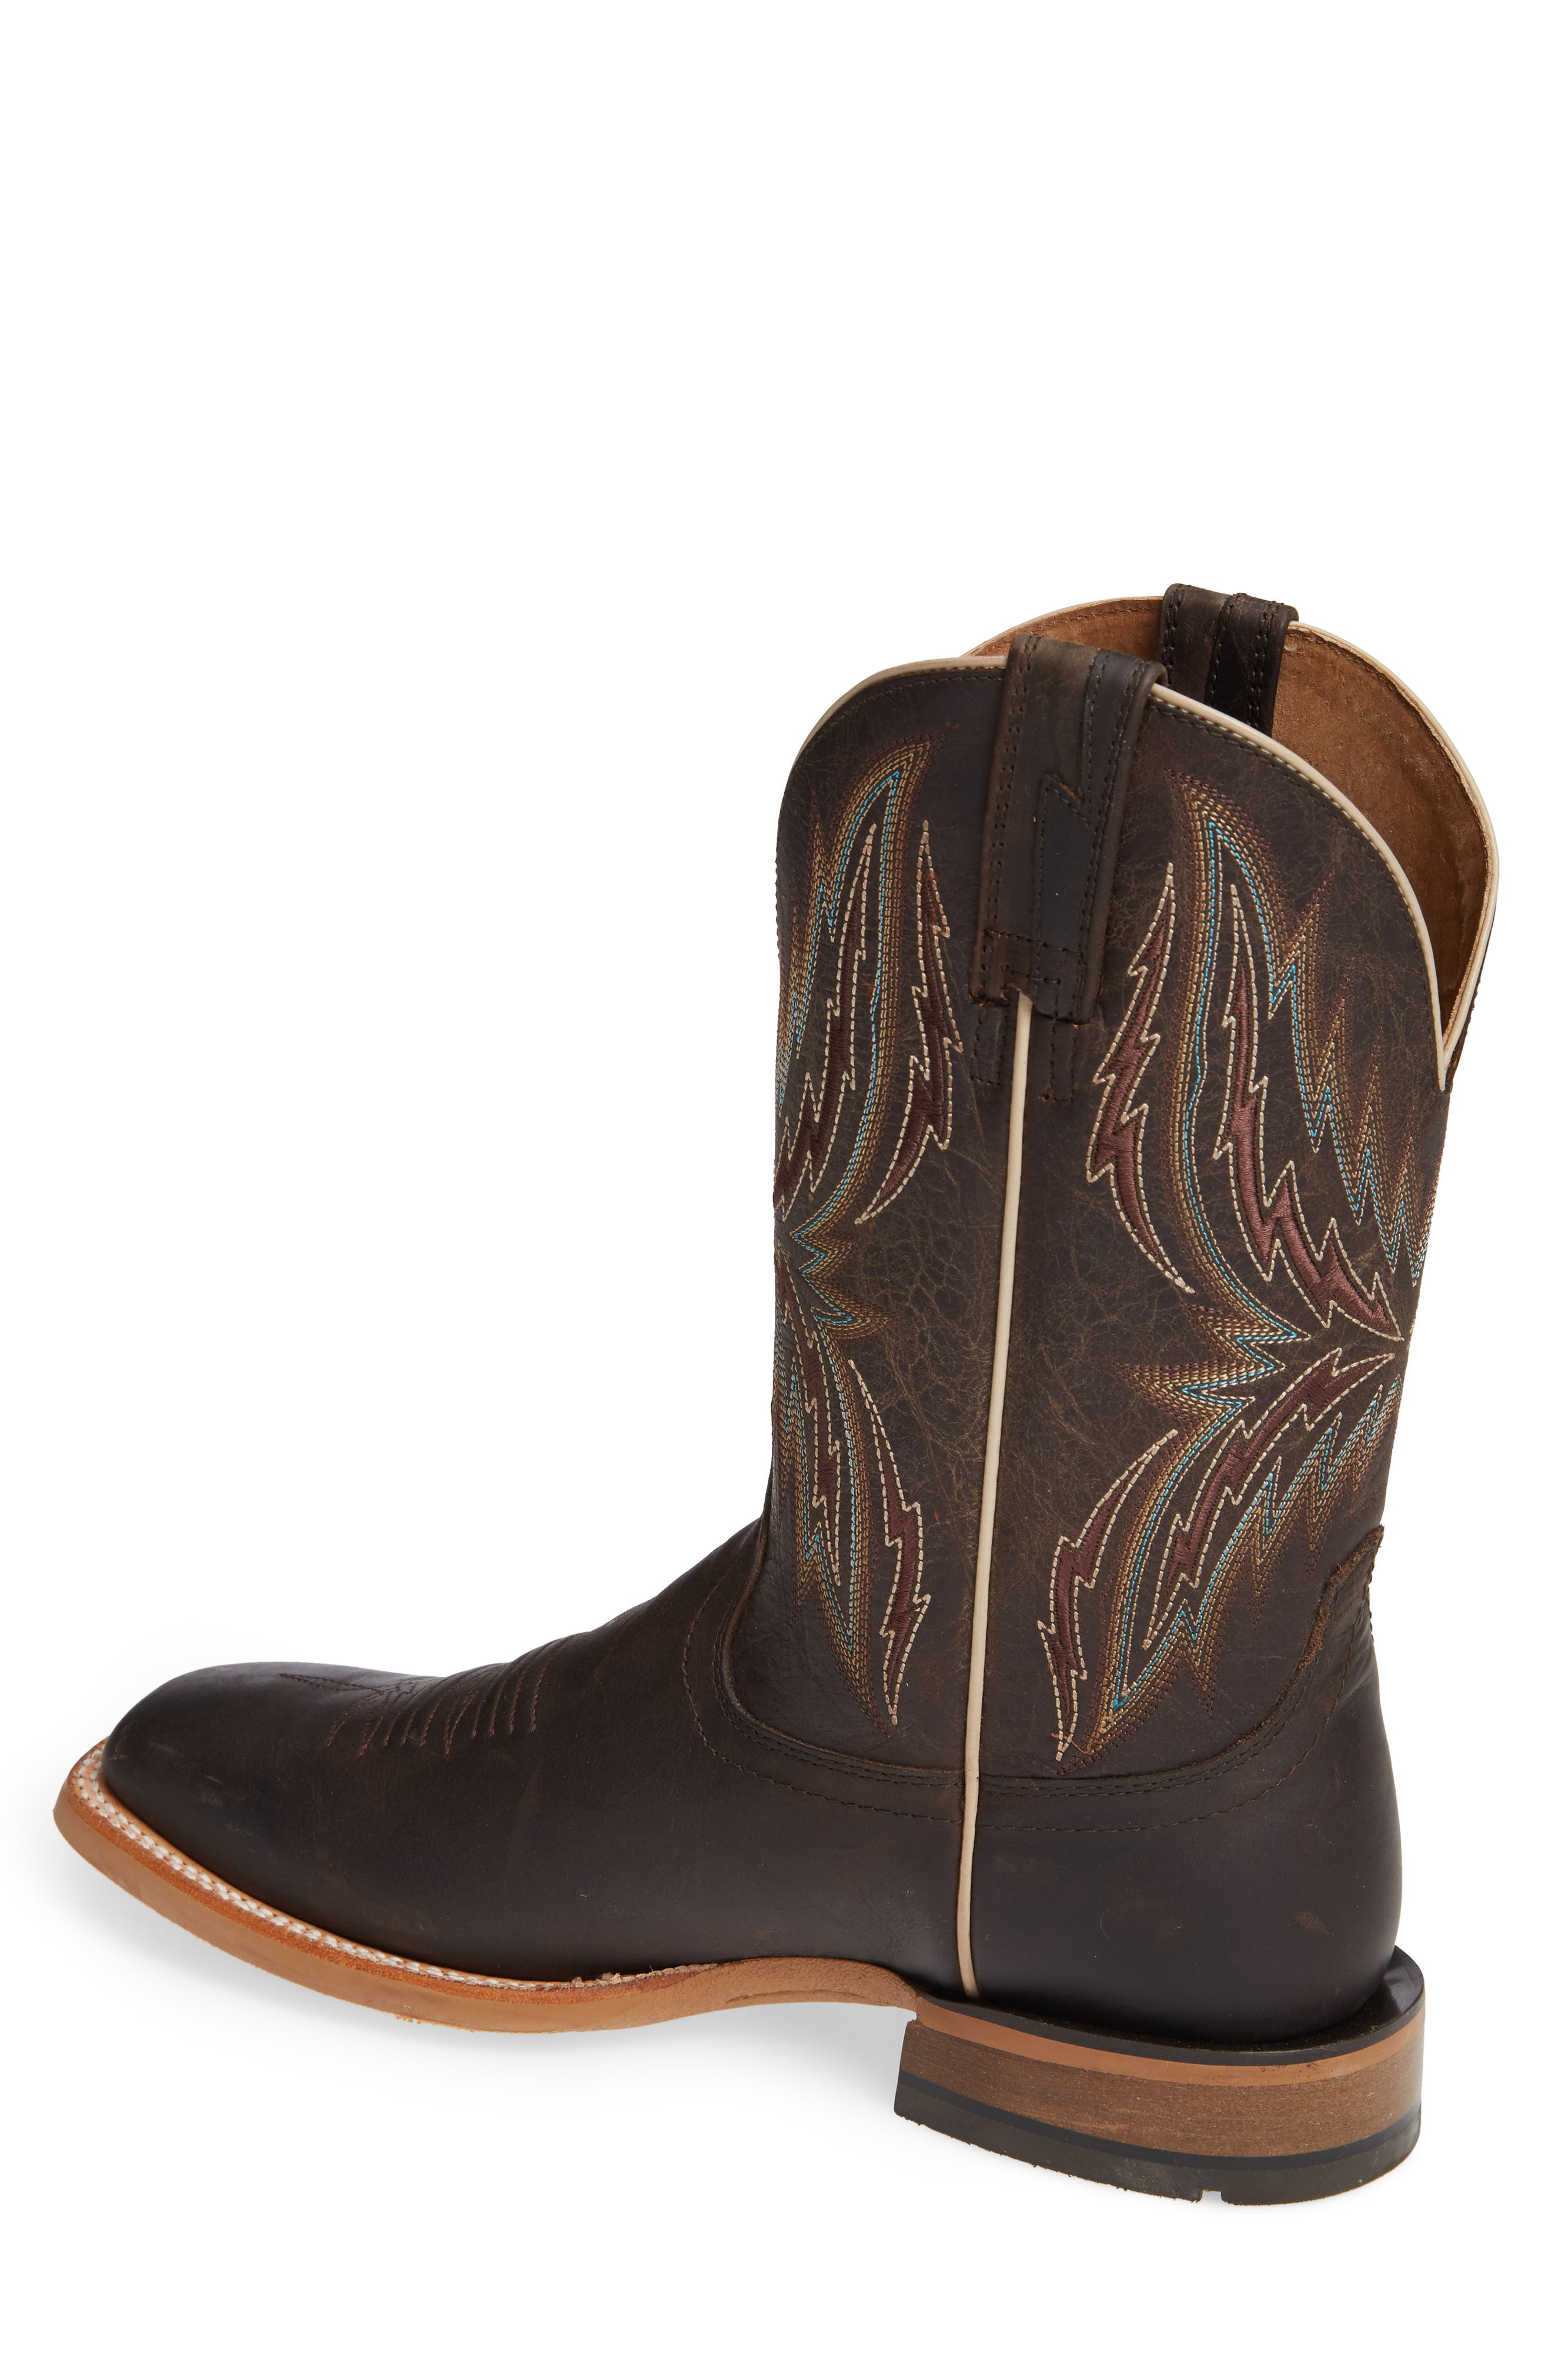 Arena Rebound Cowboy Boot,                             Alternate thumbnail 2, color,                             BROWN/ DESERT LEATHER